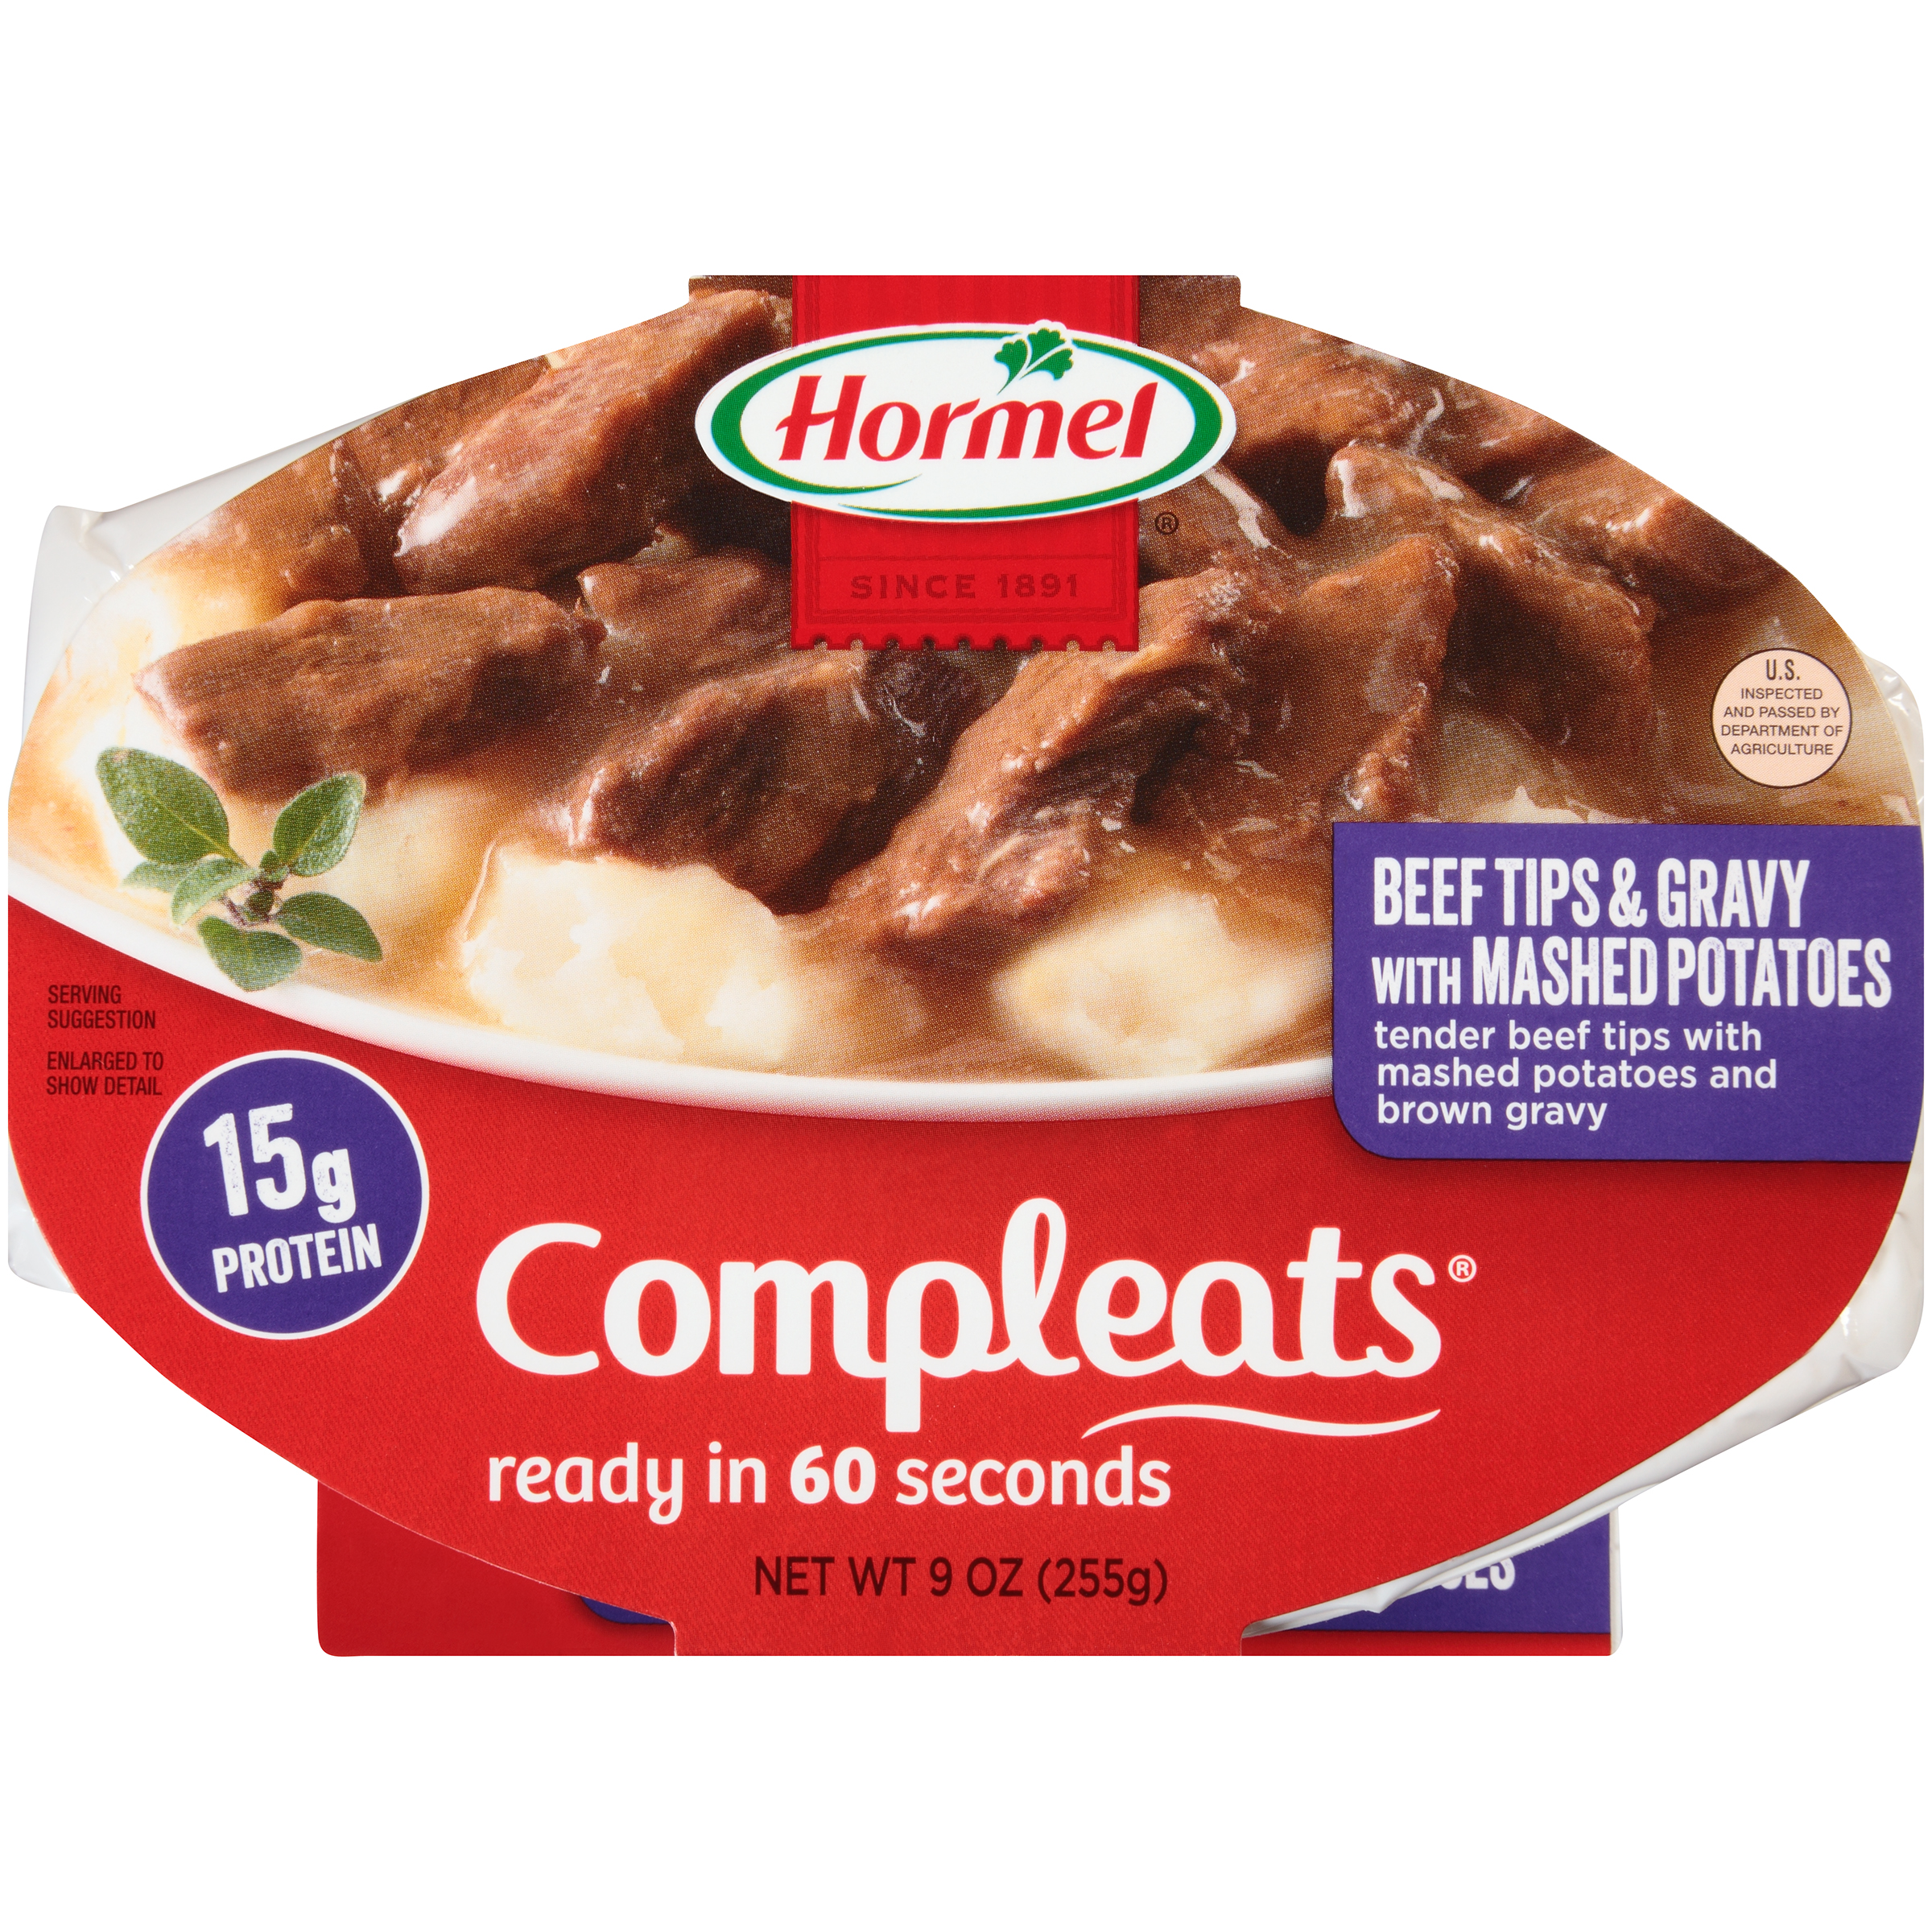 Hormel Beef Steak Tips W Mashed Potatoes & Gravy Compleats Microwave Bowls, 10 oz by Hormel